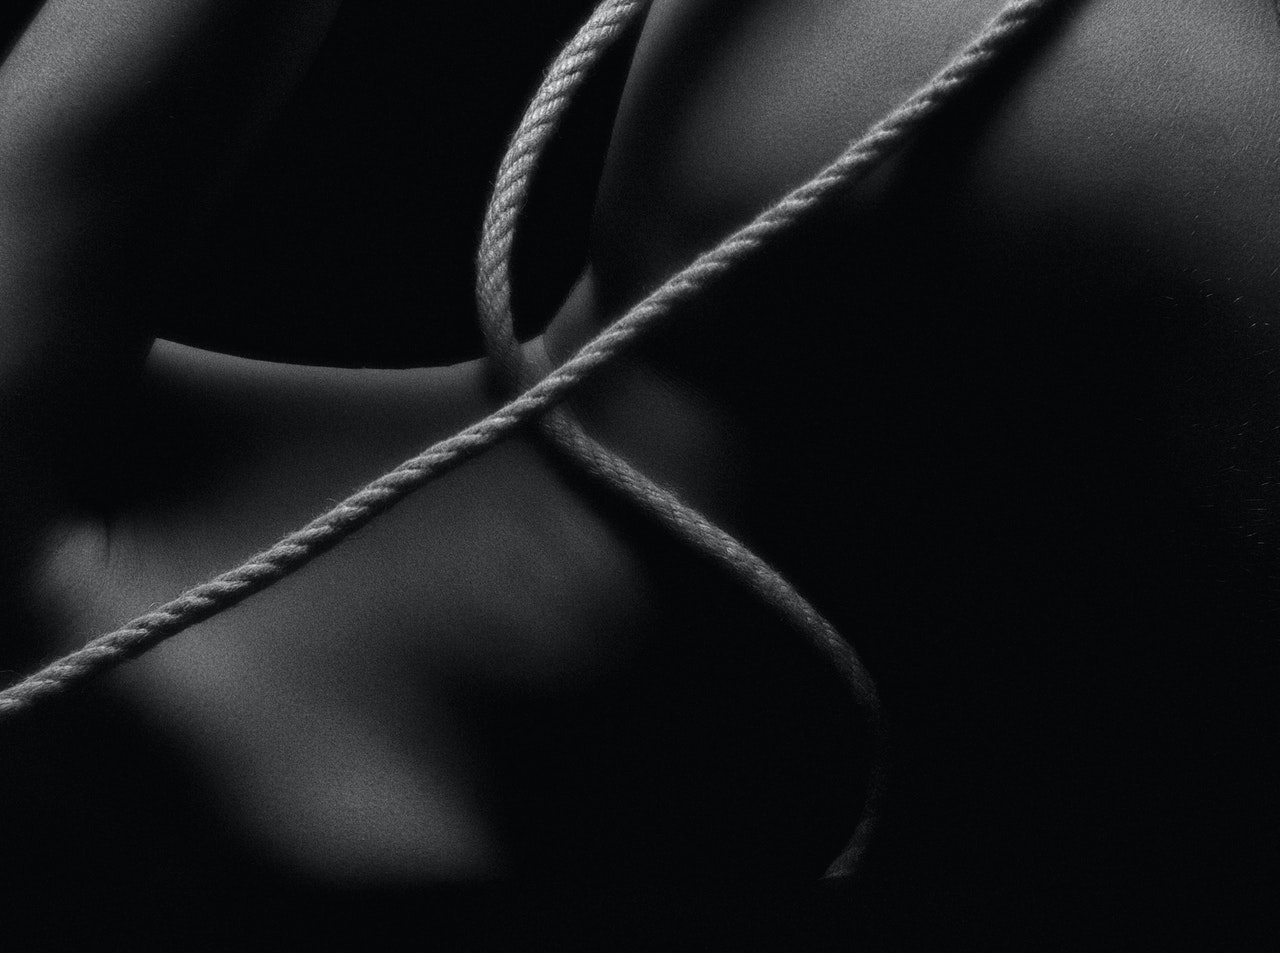 rope on body